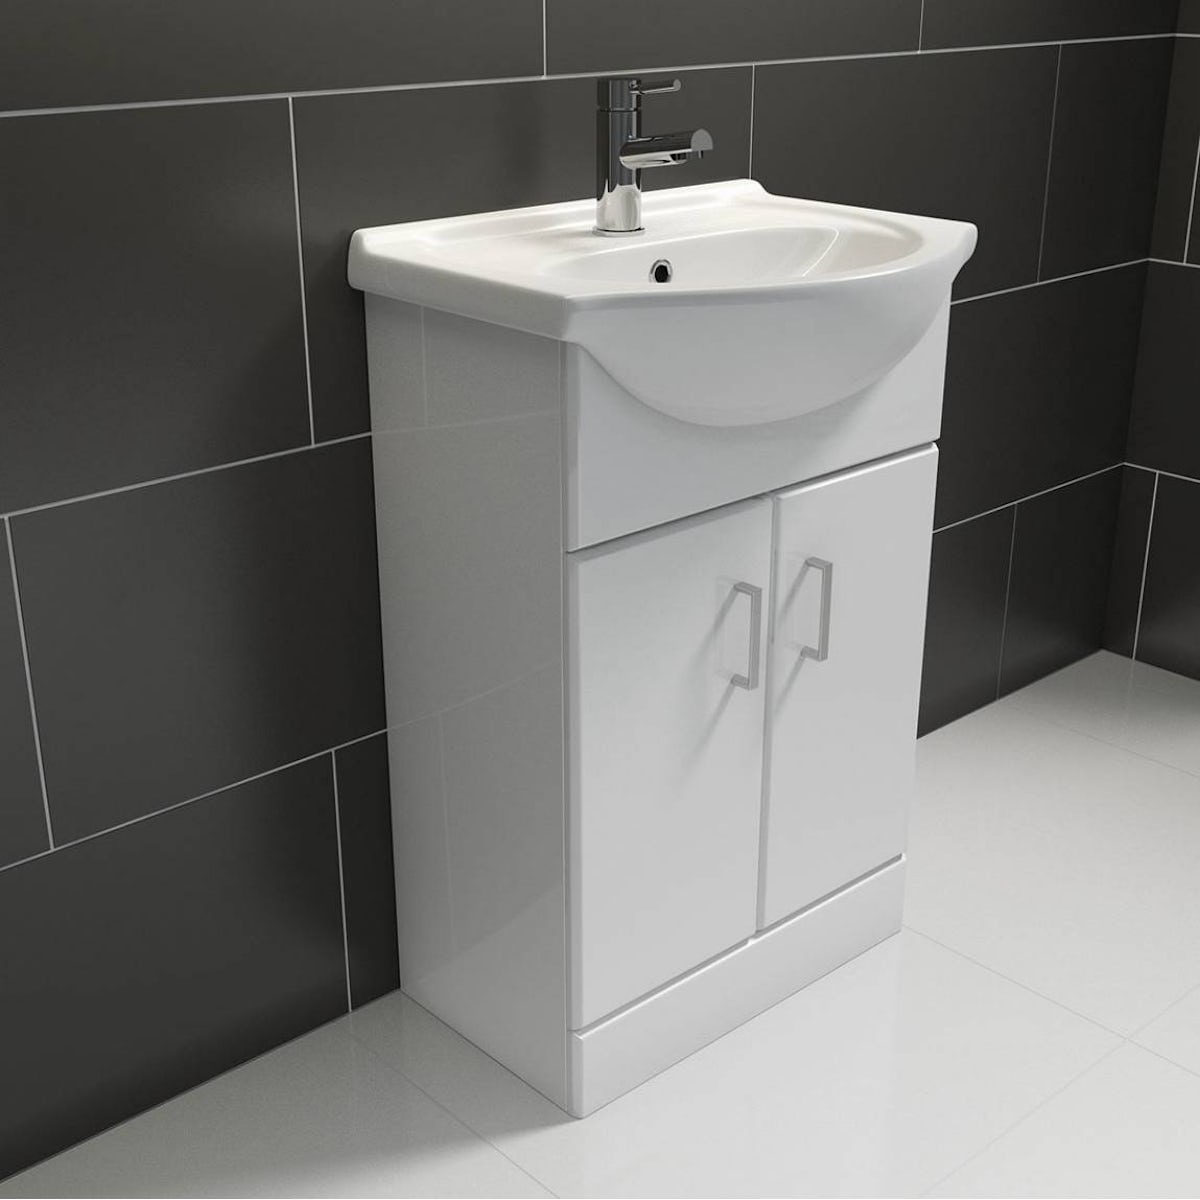 and the kitchen sink white vanity unit with basin 550mm victoriaplum 4064